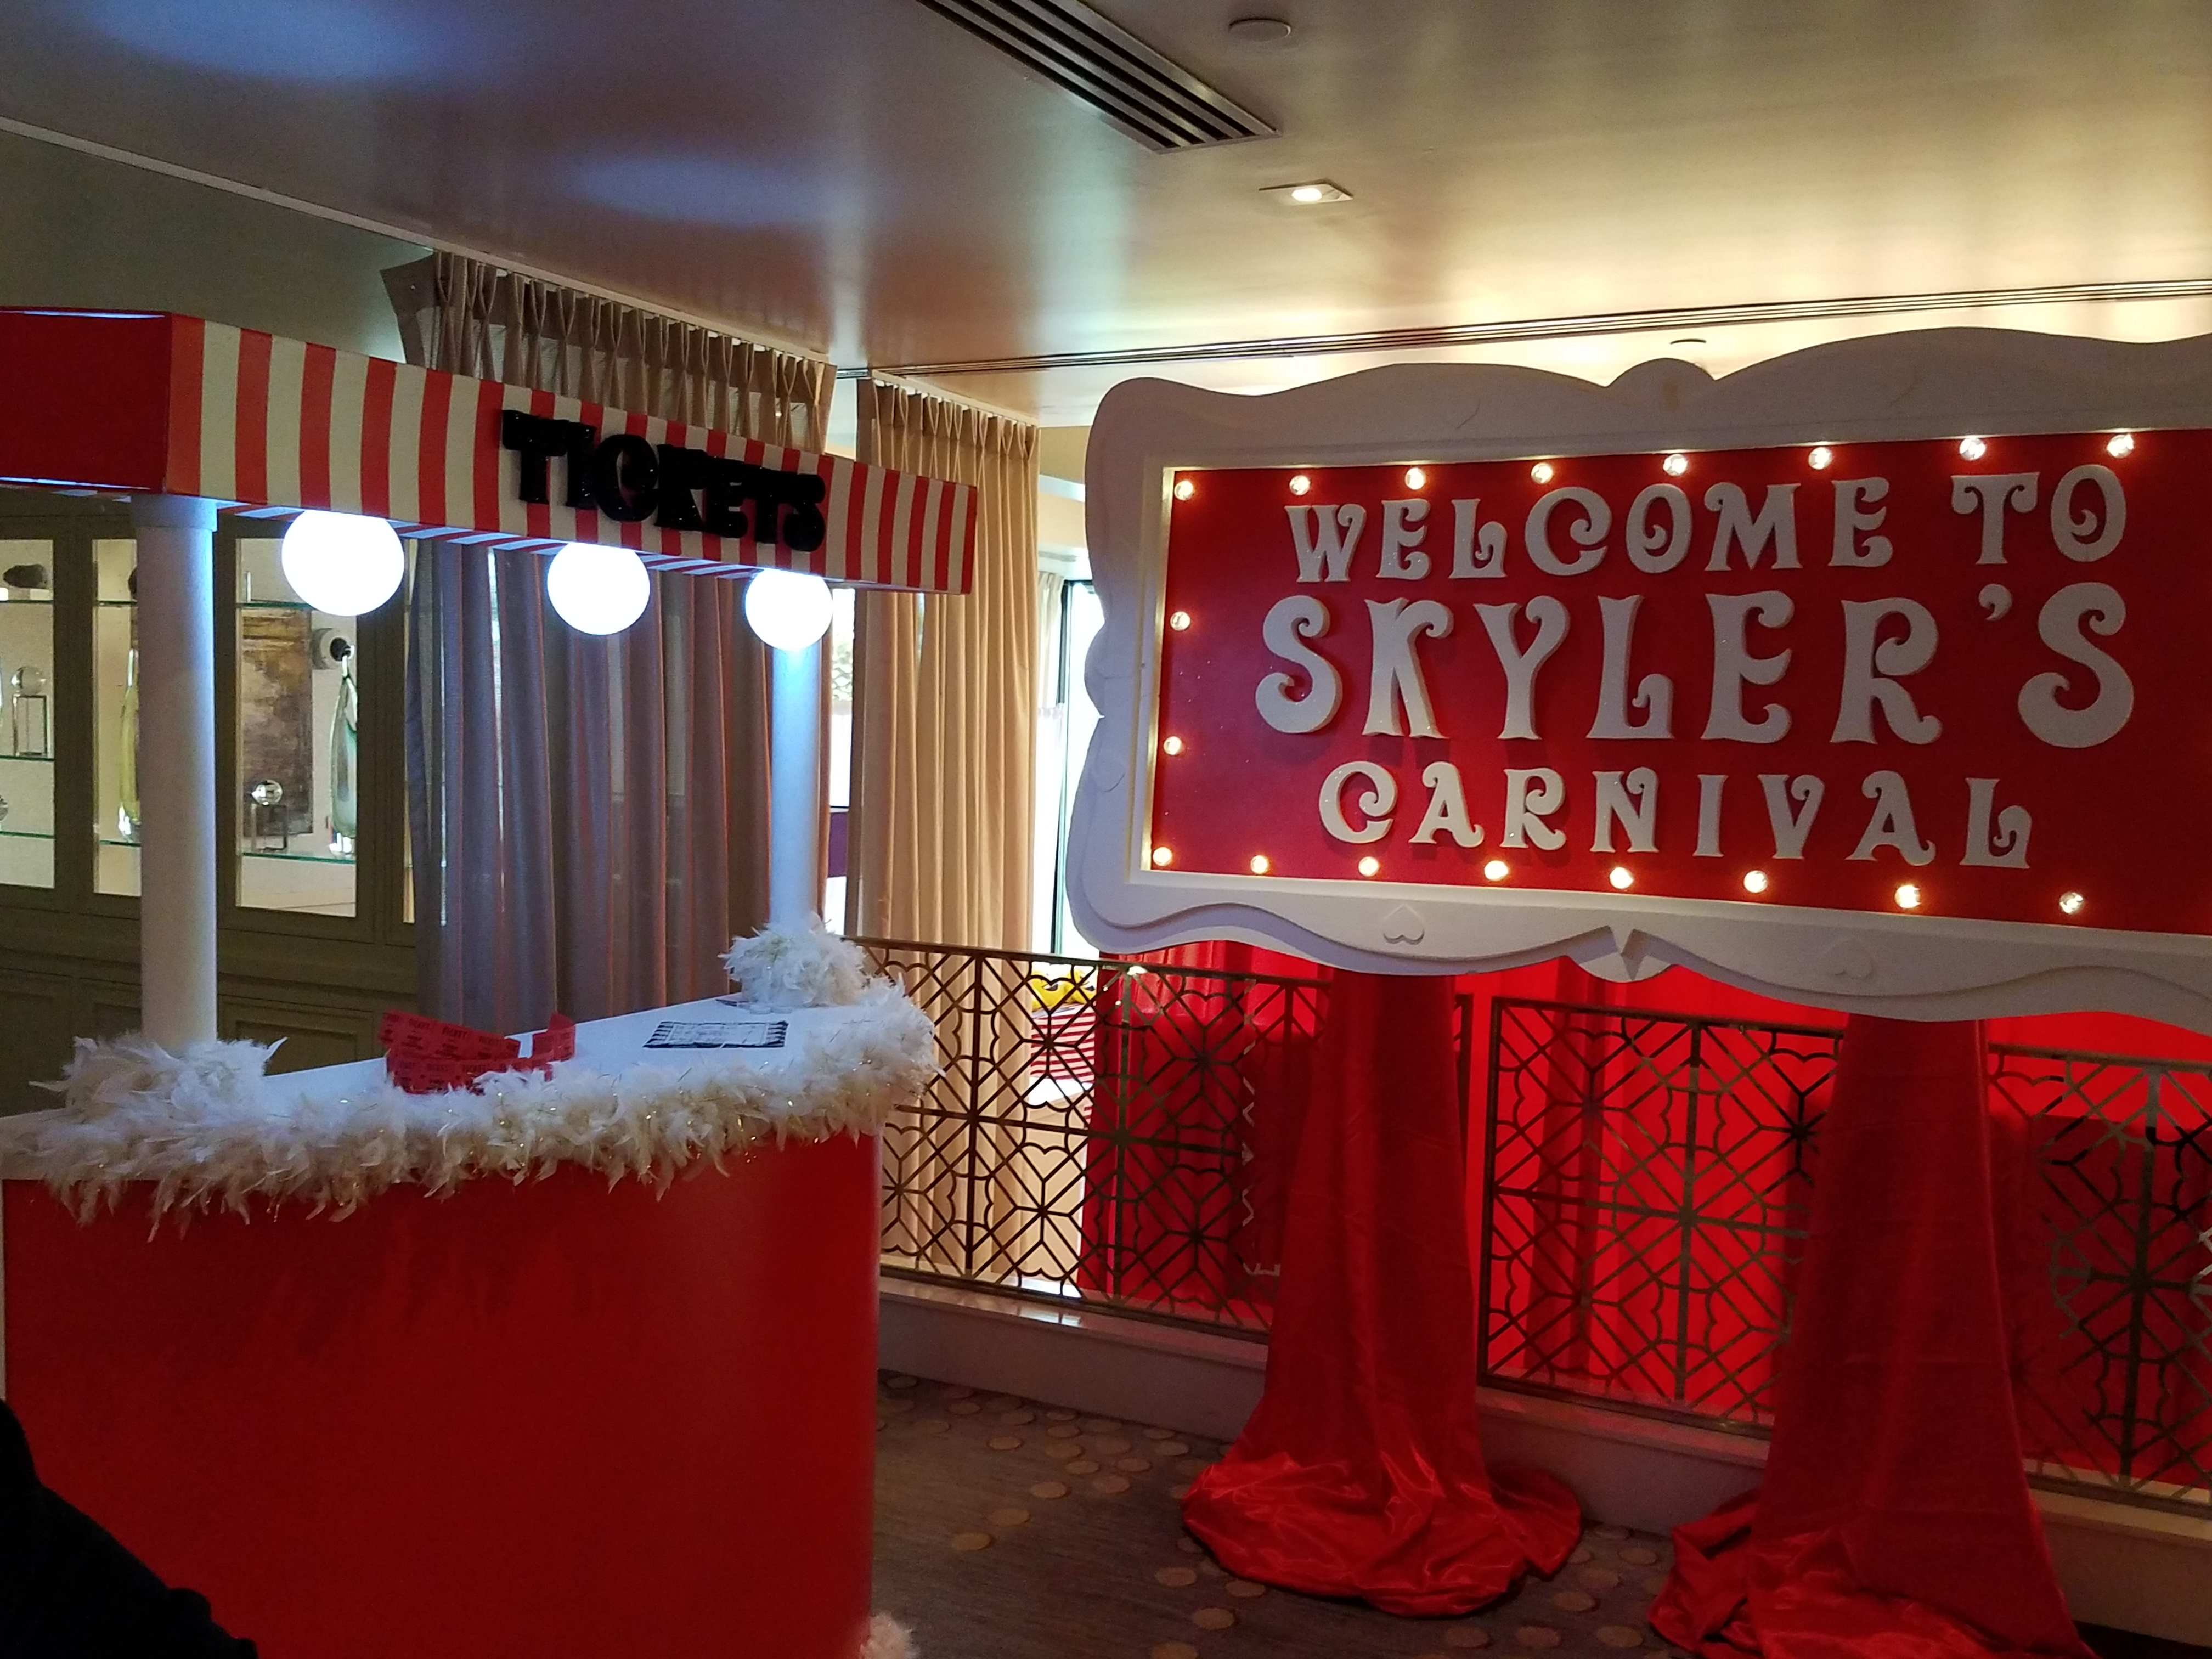 nightclubshop-miami-dade-broward-special-event-planning-planner-services-private-personal-carnival.jpg